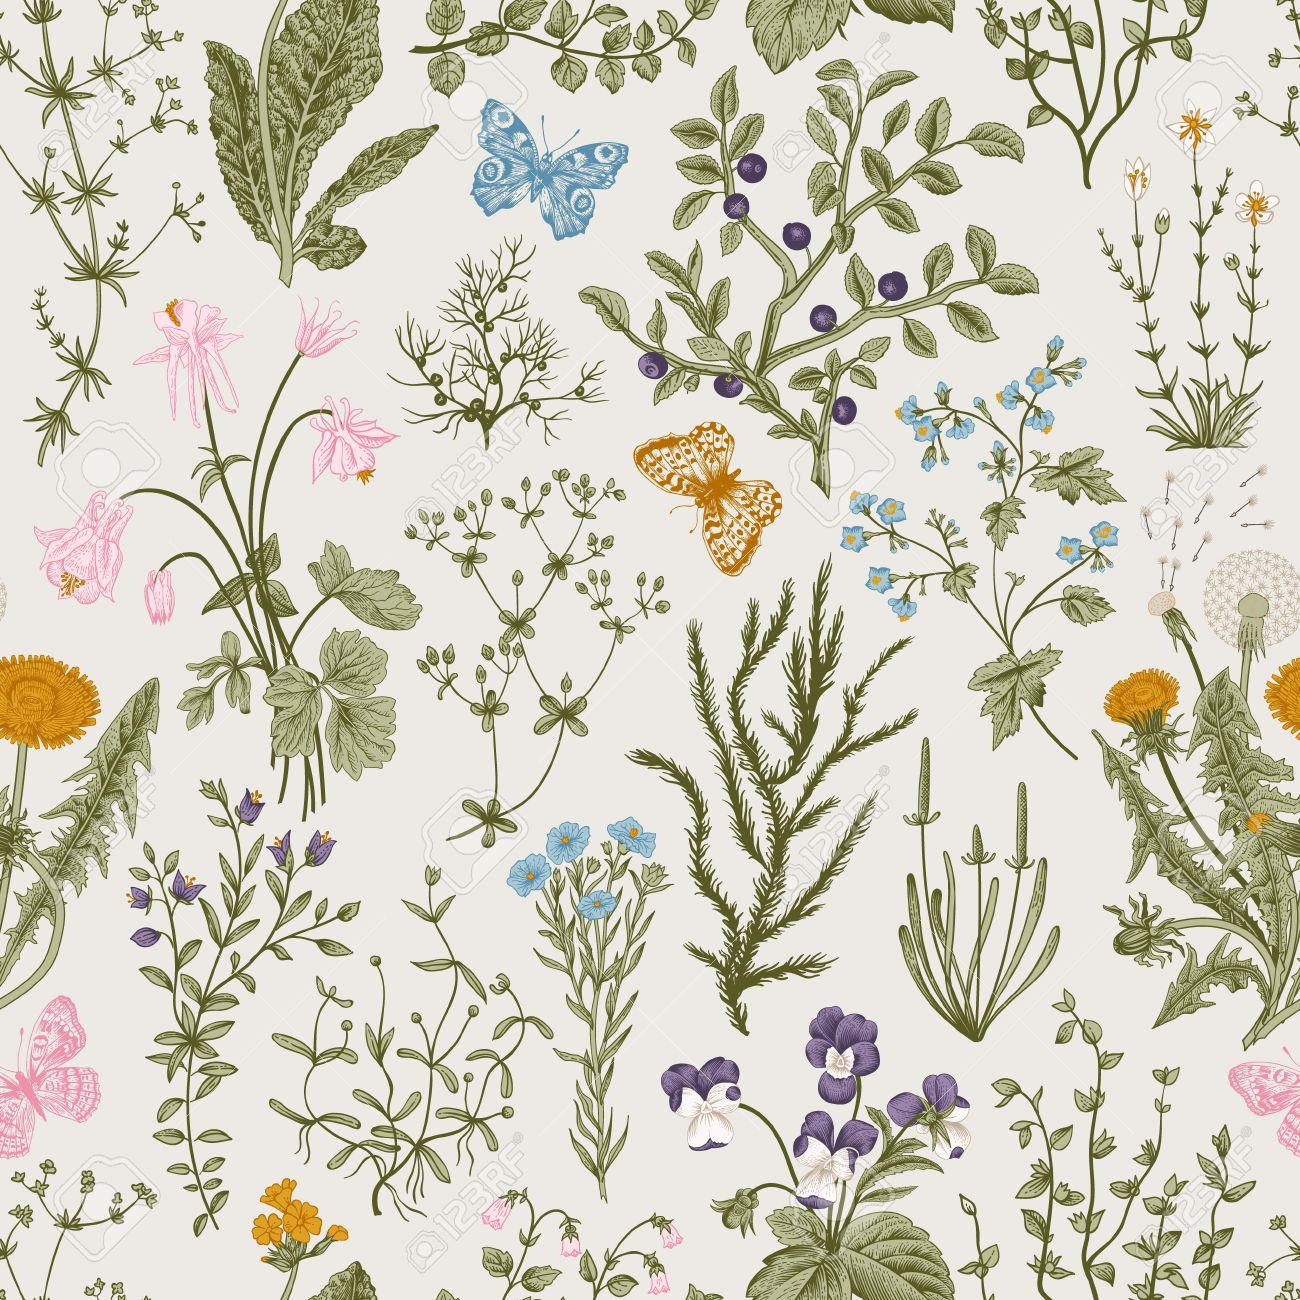 Vector vintage seamless floral pattern. Herbs and wild flowers. Botanical Illustration engraving style. Colorful - 53275962